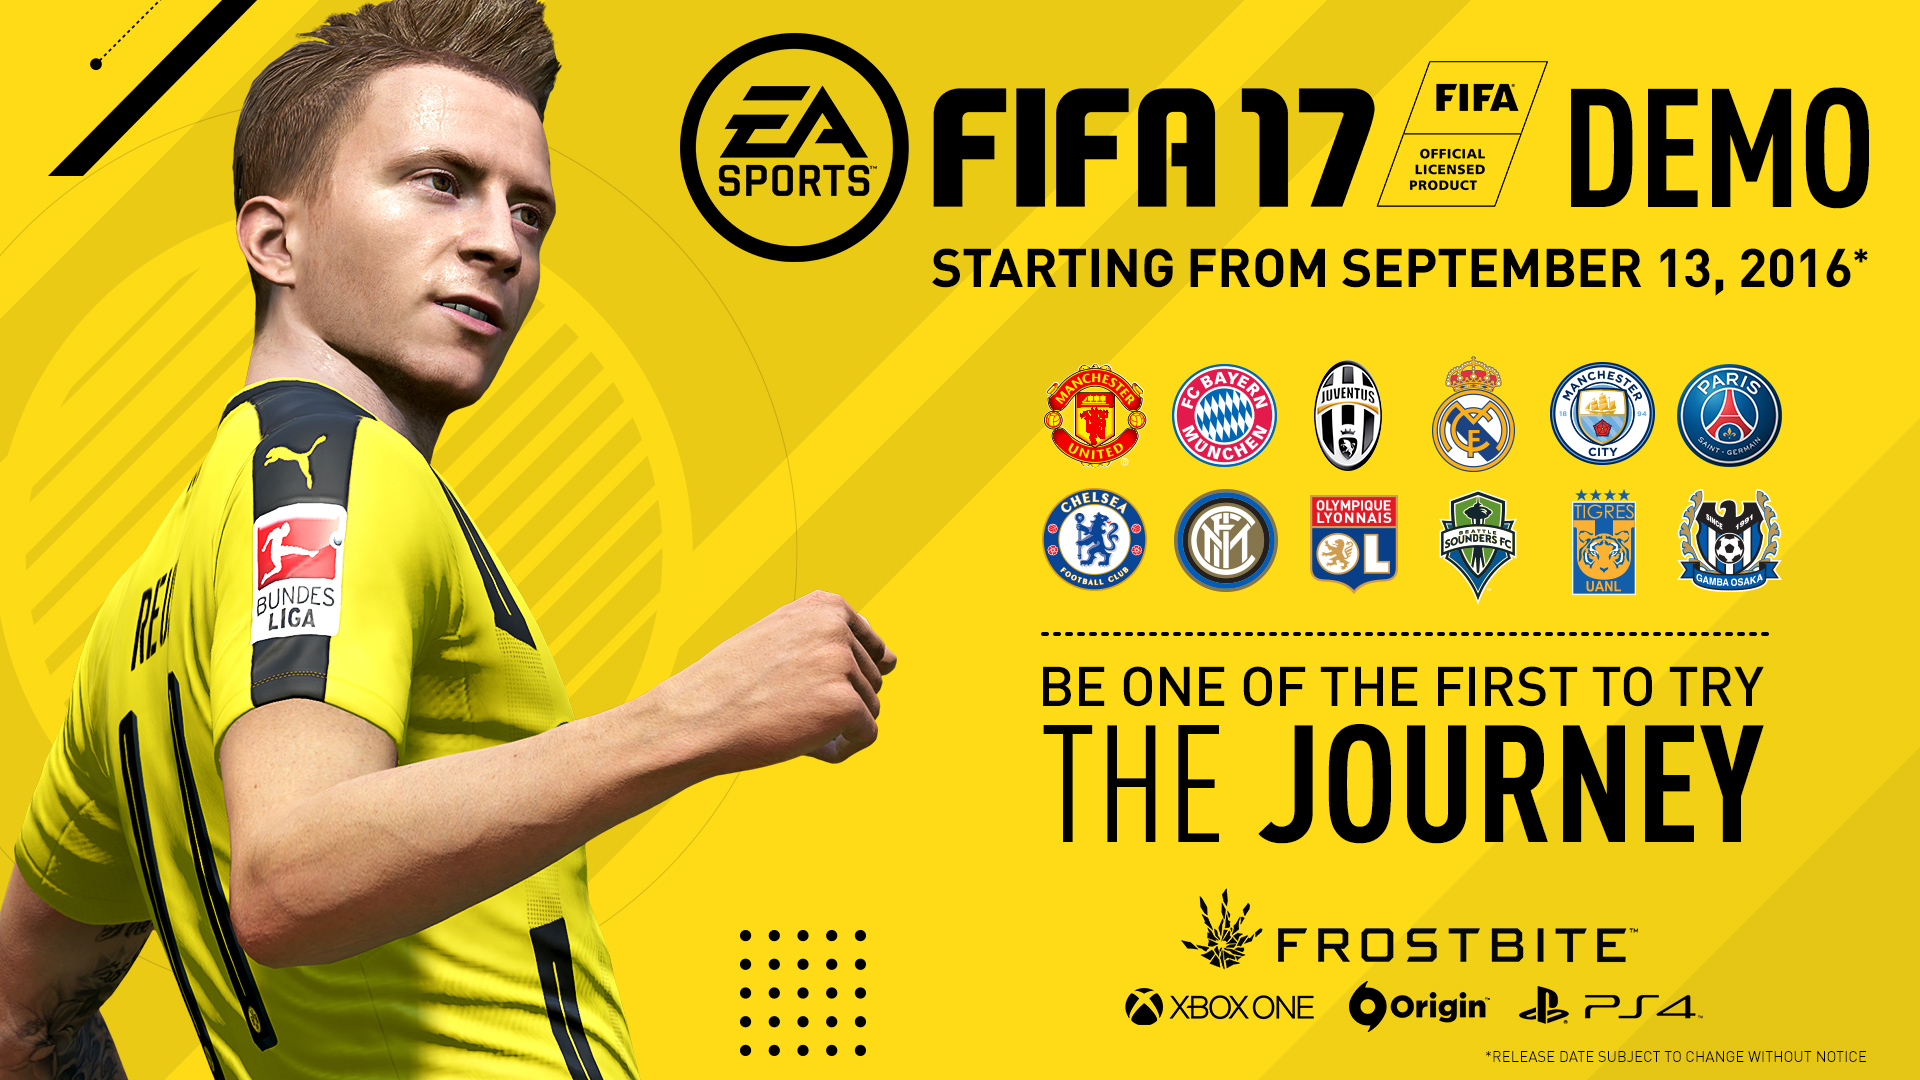 20160831_FIFA17_DemoLaunch_Asset_FINAL_OPT--1920x1080.jpg